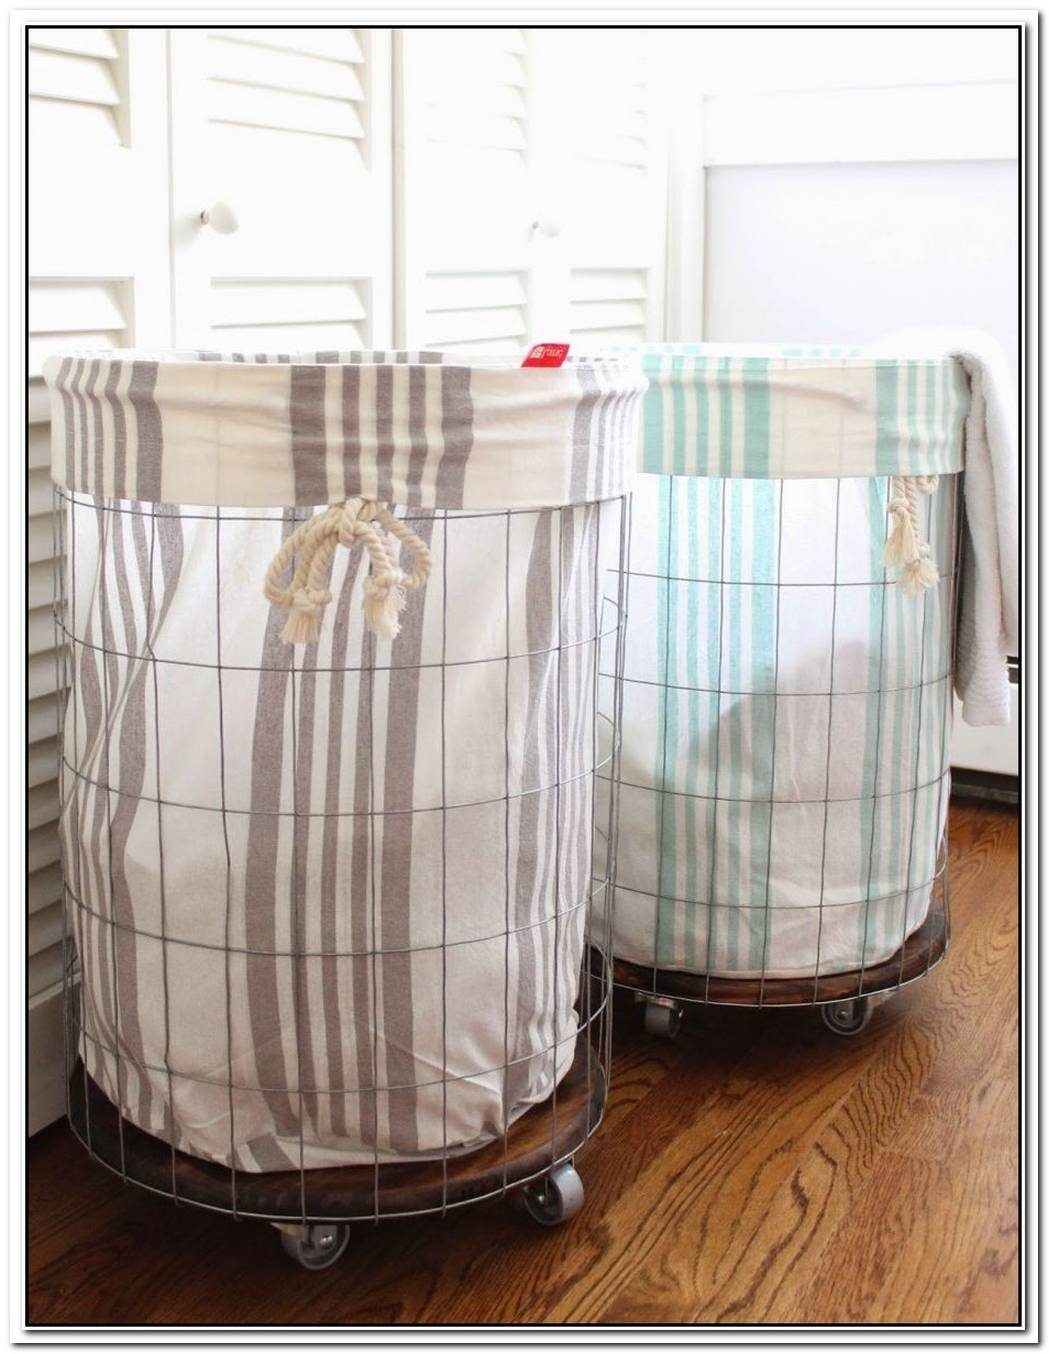 Sort Your Laundry In Style With These Attractive Laundry Hampers